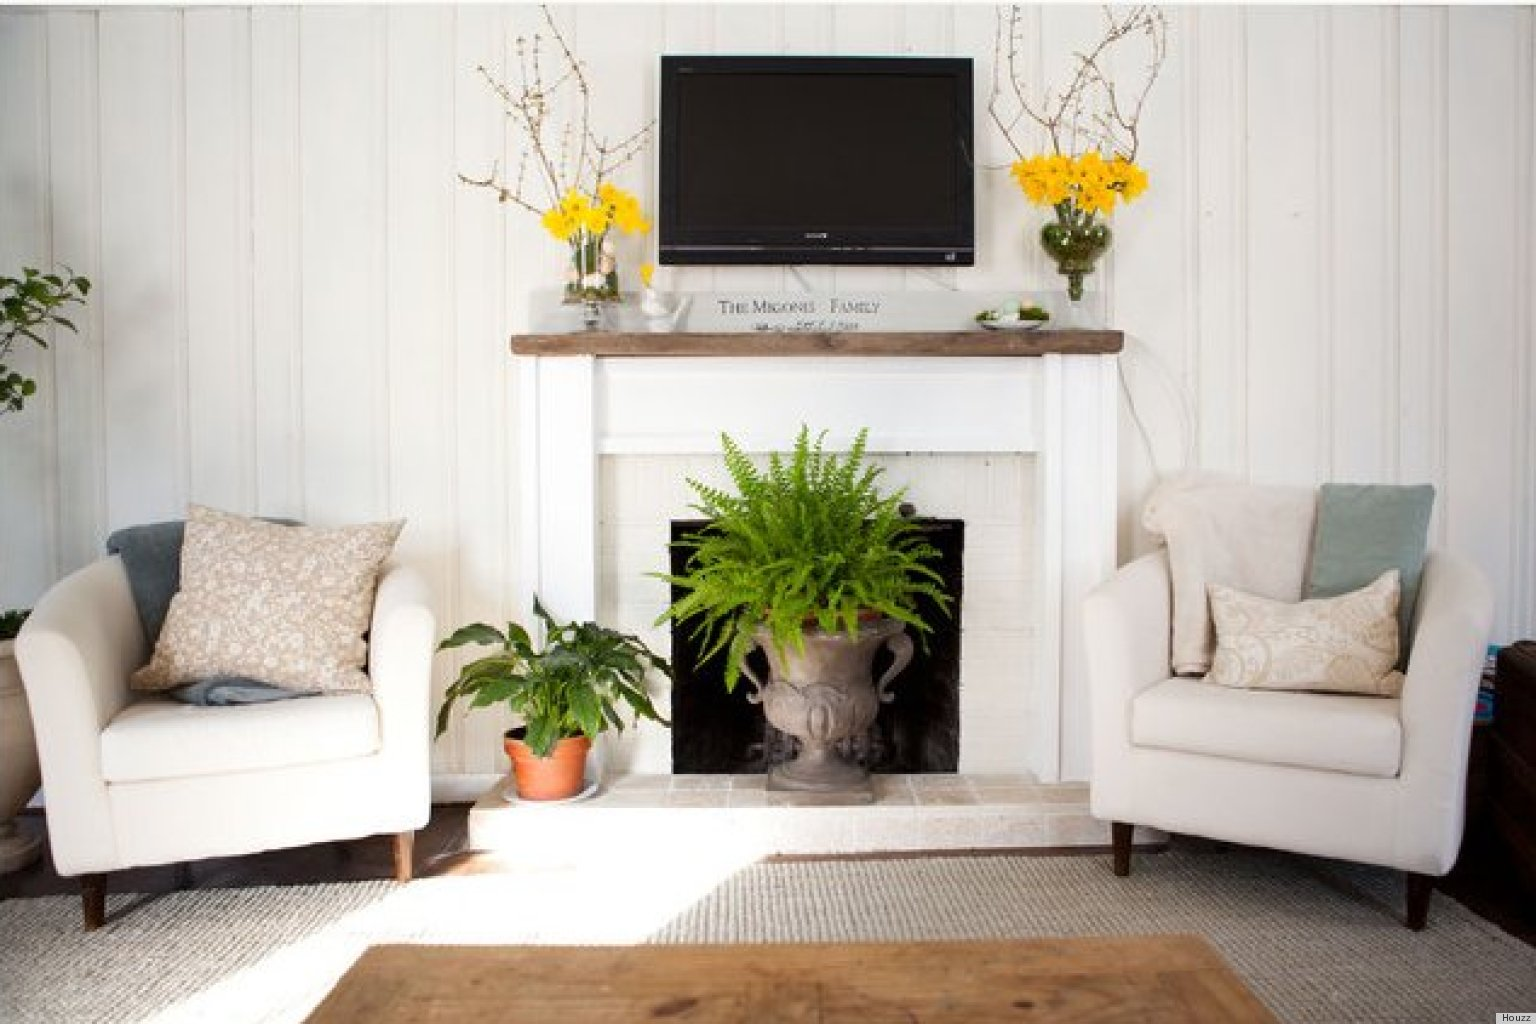 How To Decorate Fireplace Wall 10 Ways To Decorate Your Fireplace In The Summer Since